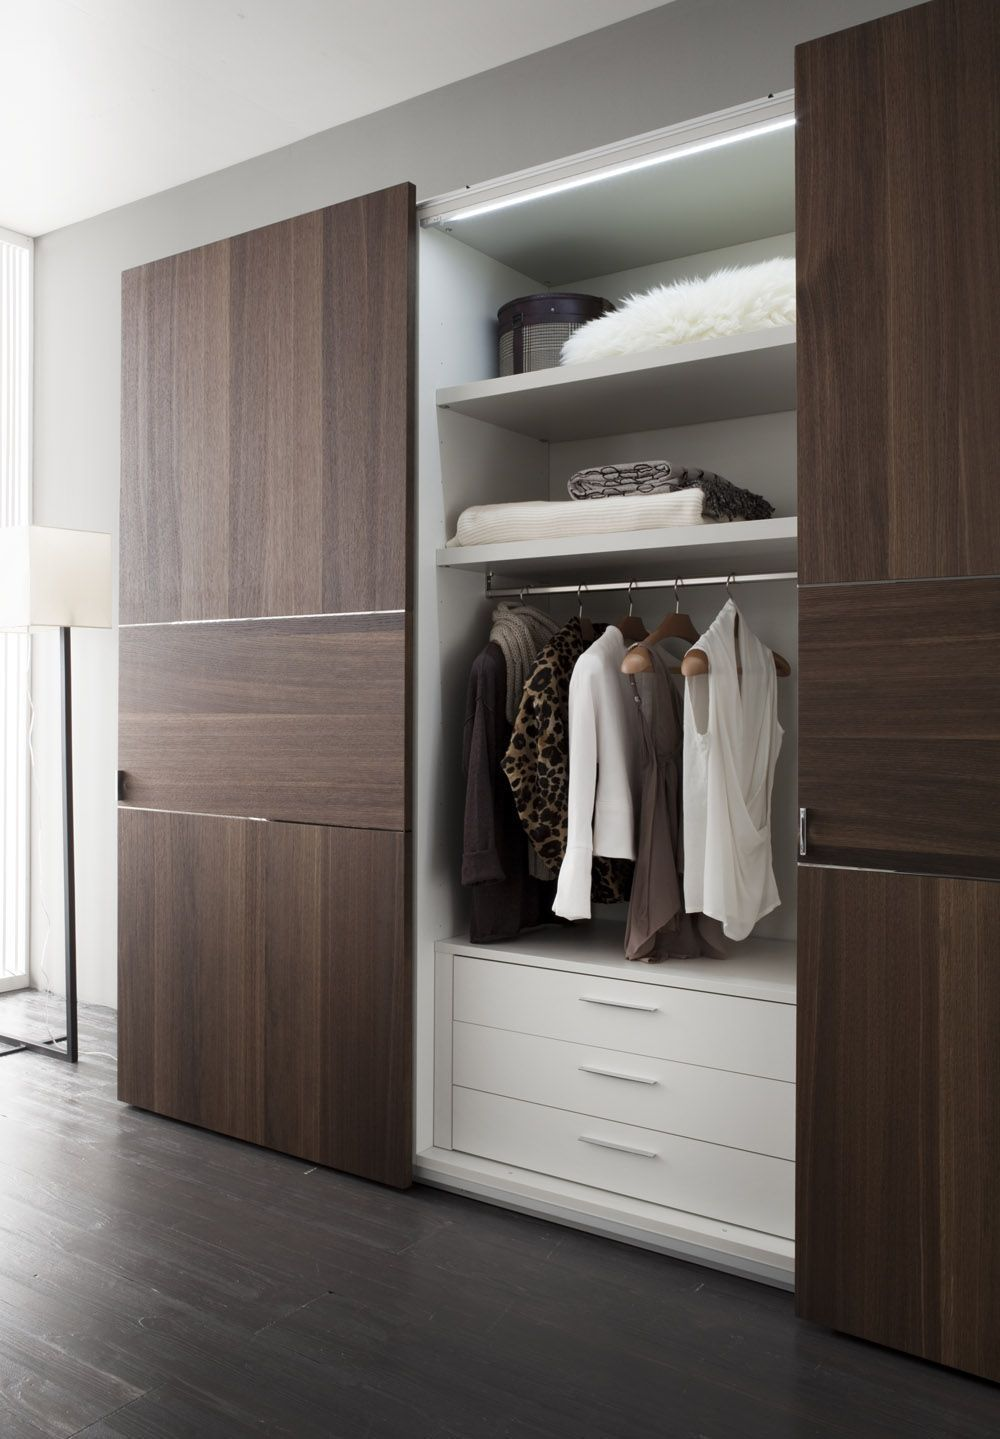 Source By Abdallhb7r In 2020 Bedroom Cupboard Designs Bedroom